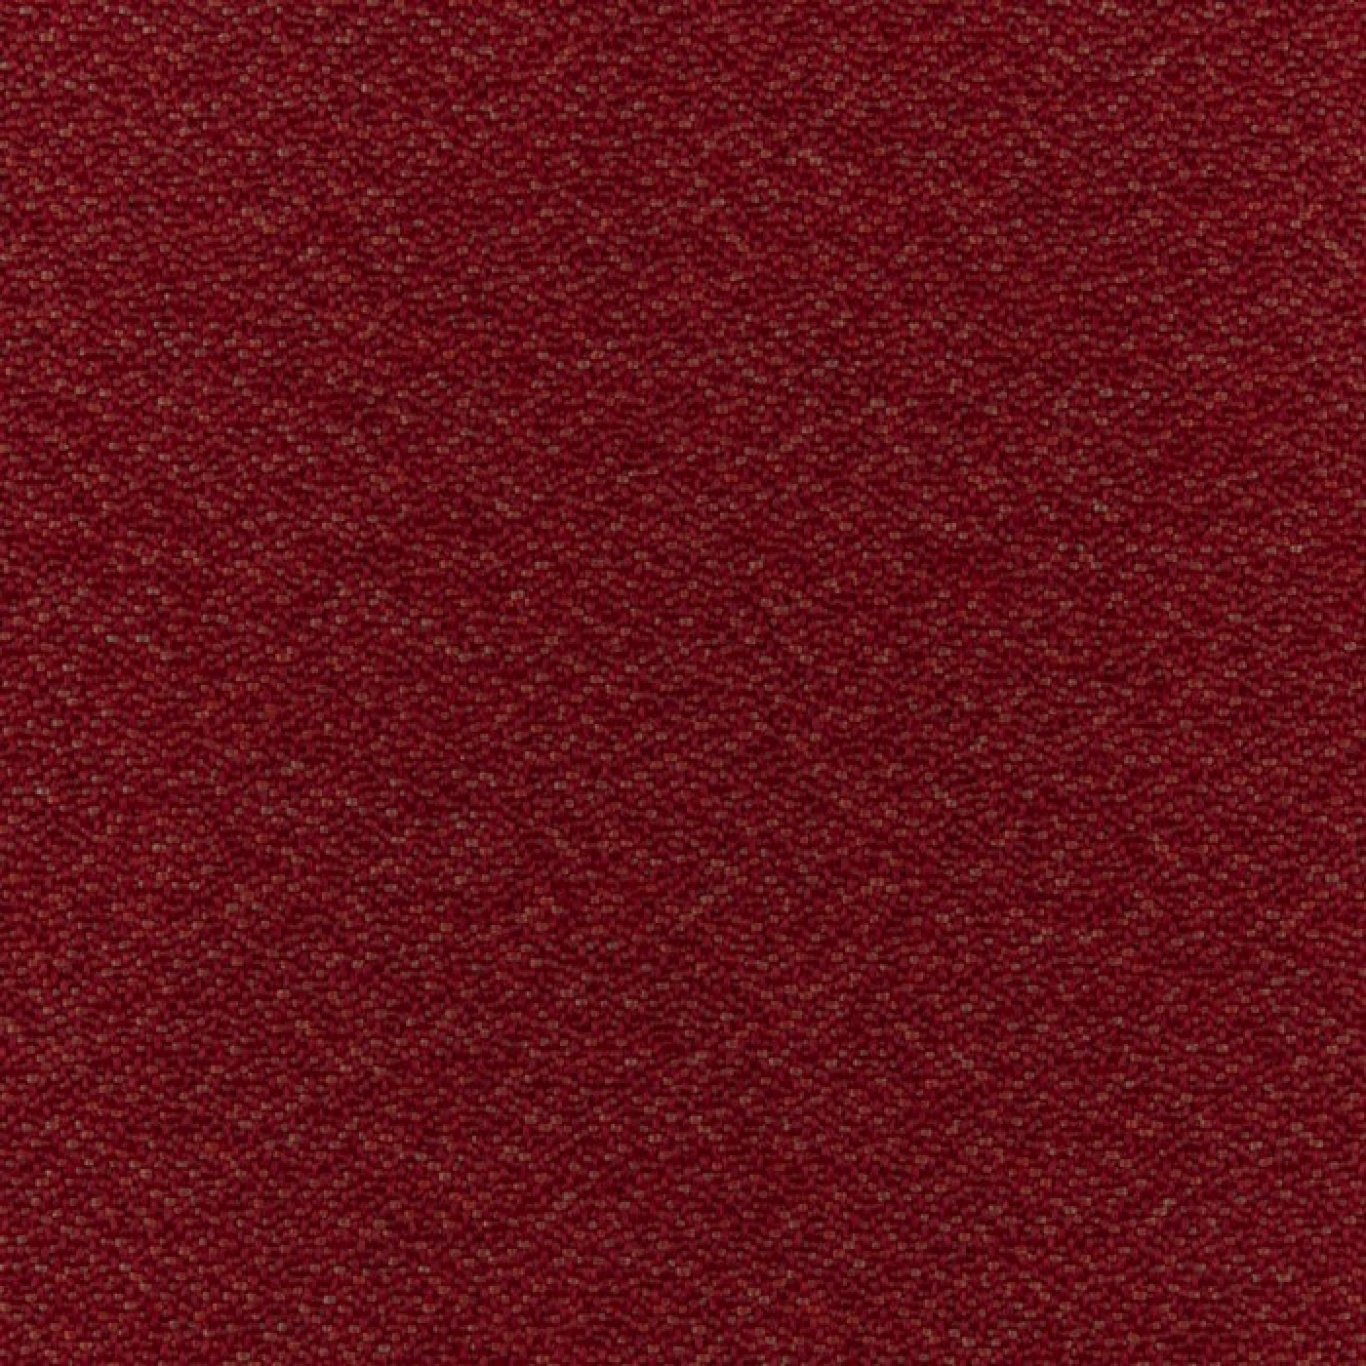 Image of Prestigious Harrison Cardinal Fabric